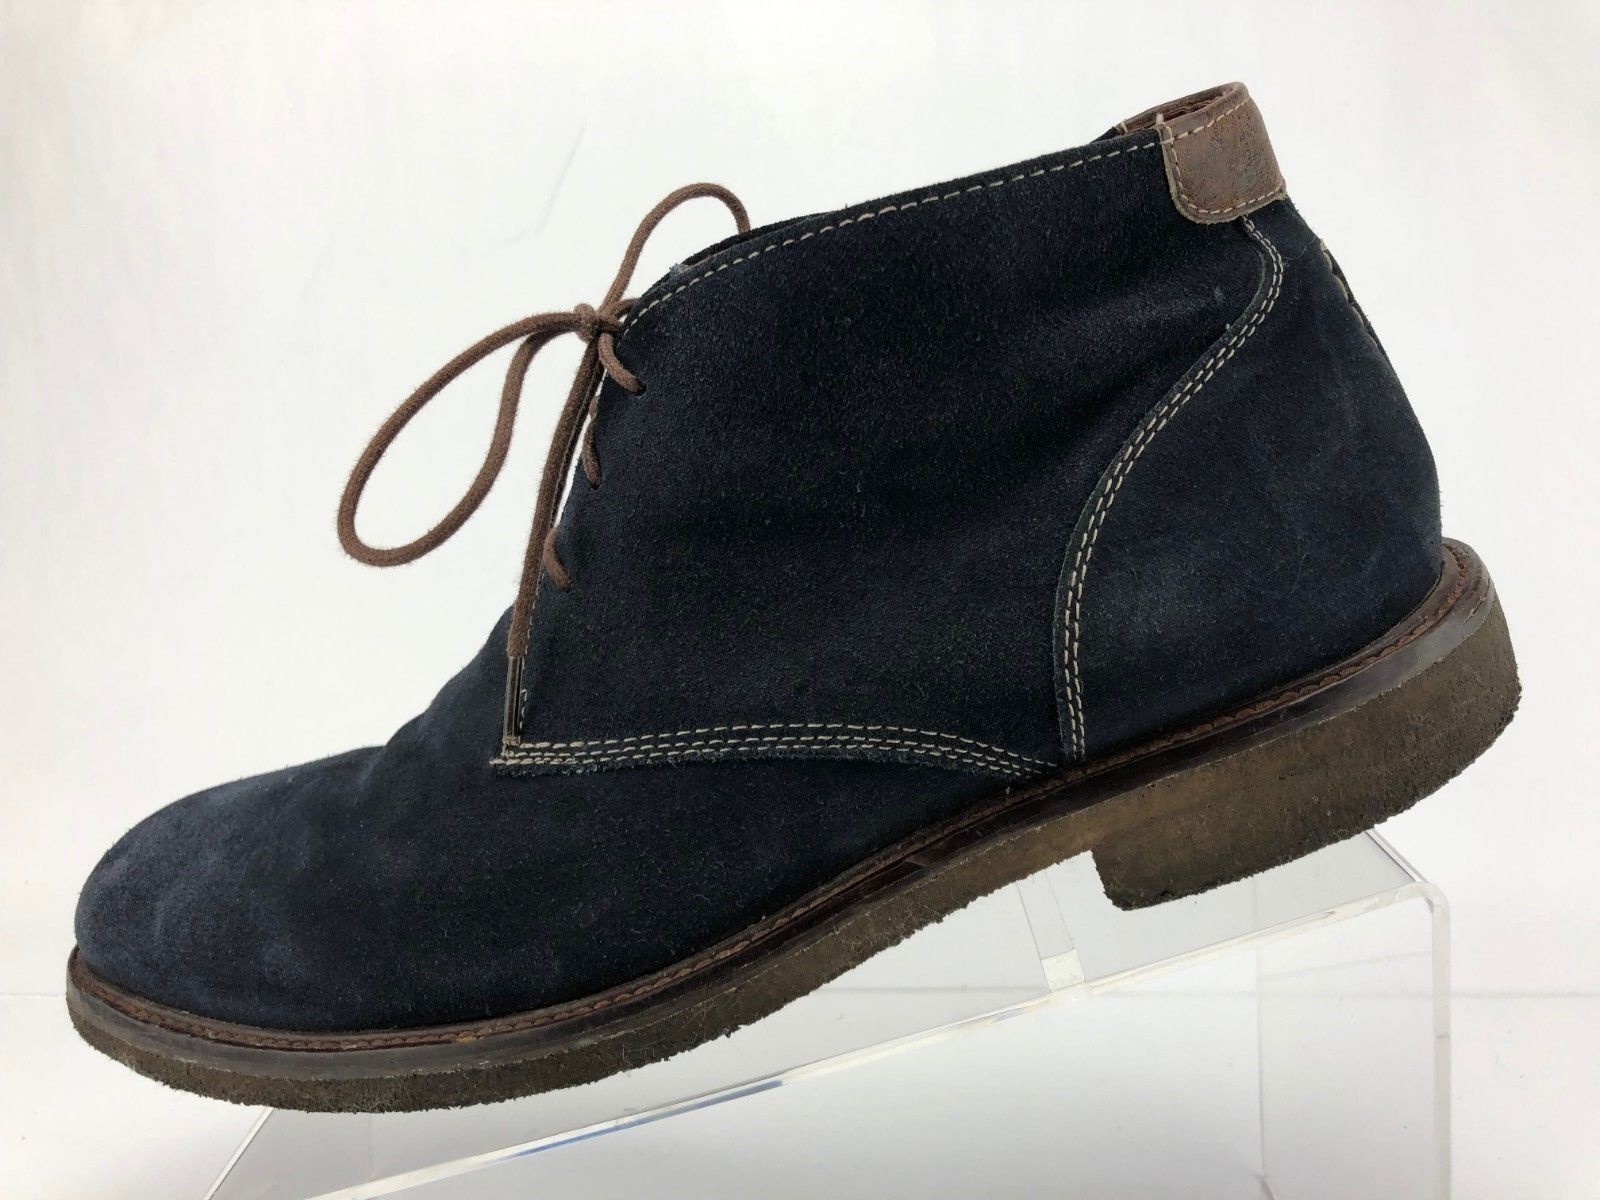 Johnston Murphy Copeland Chukka Boots bluee Oiled Suede Leather Mens Size 10 M